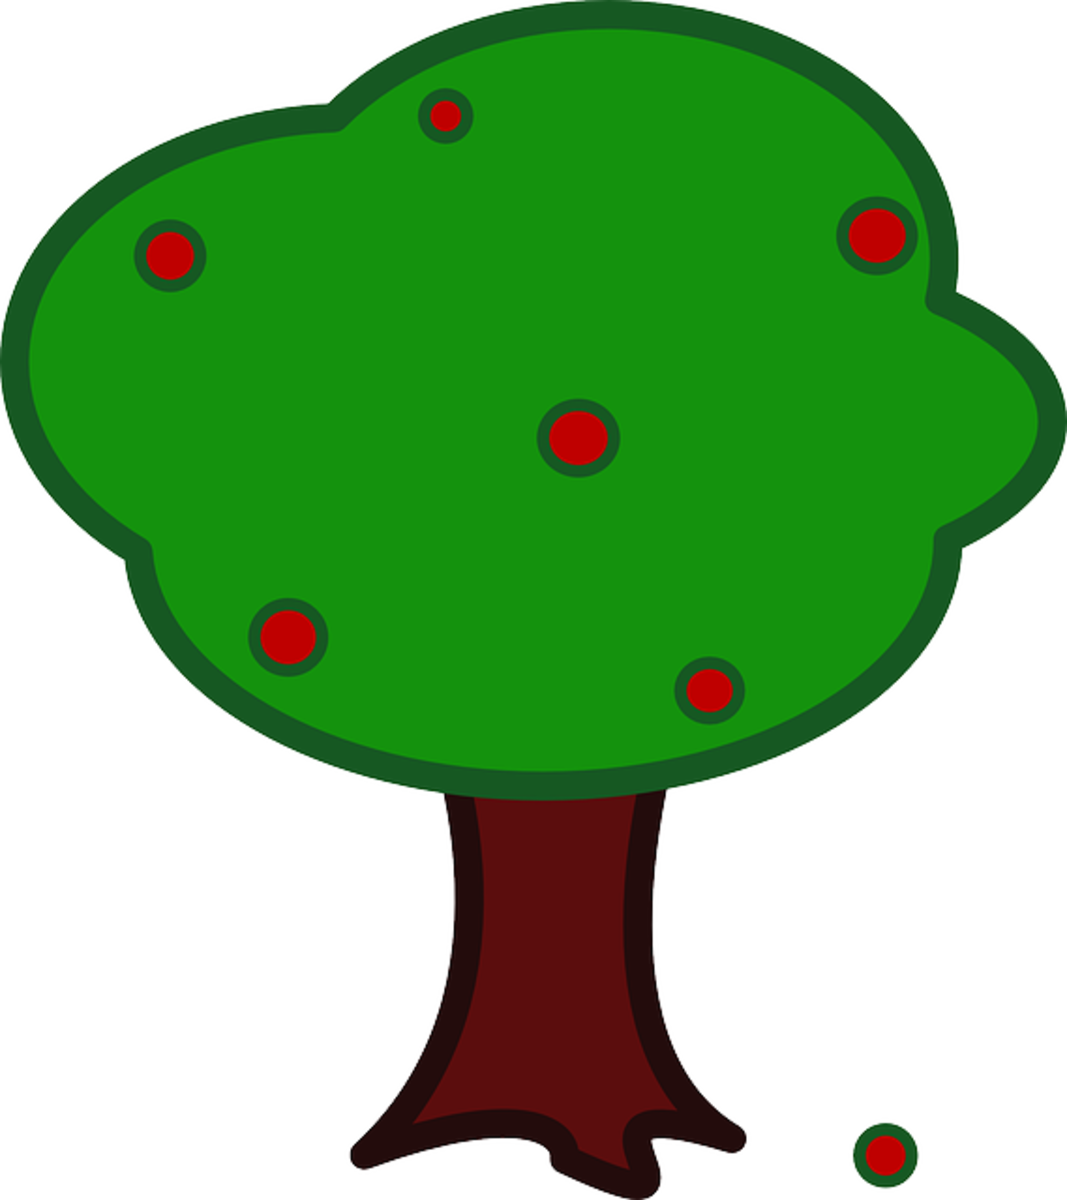 Big Apple Tree with Red Apples